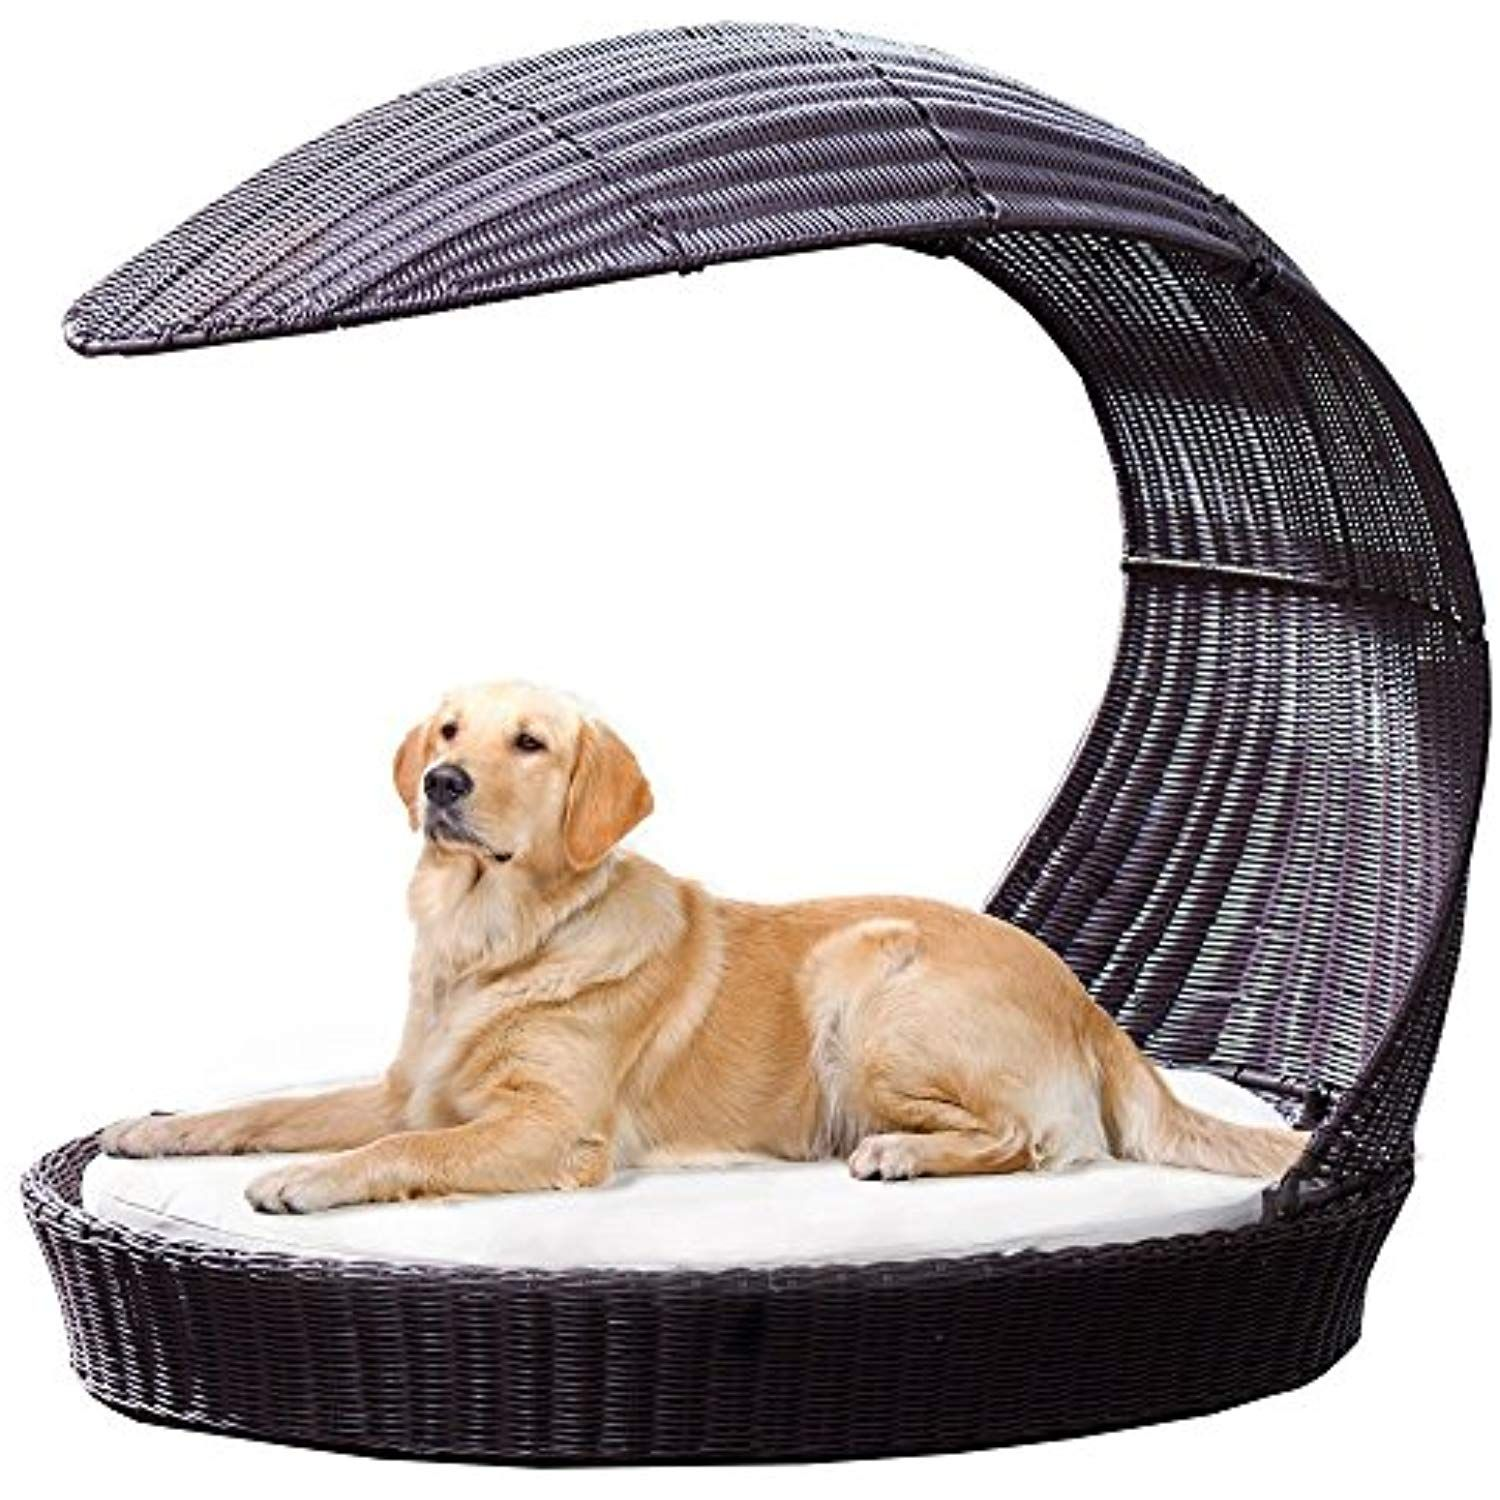 Refined Canine Outdoor Dog Chaise Lounger XLarge More